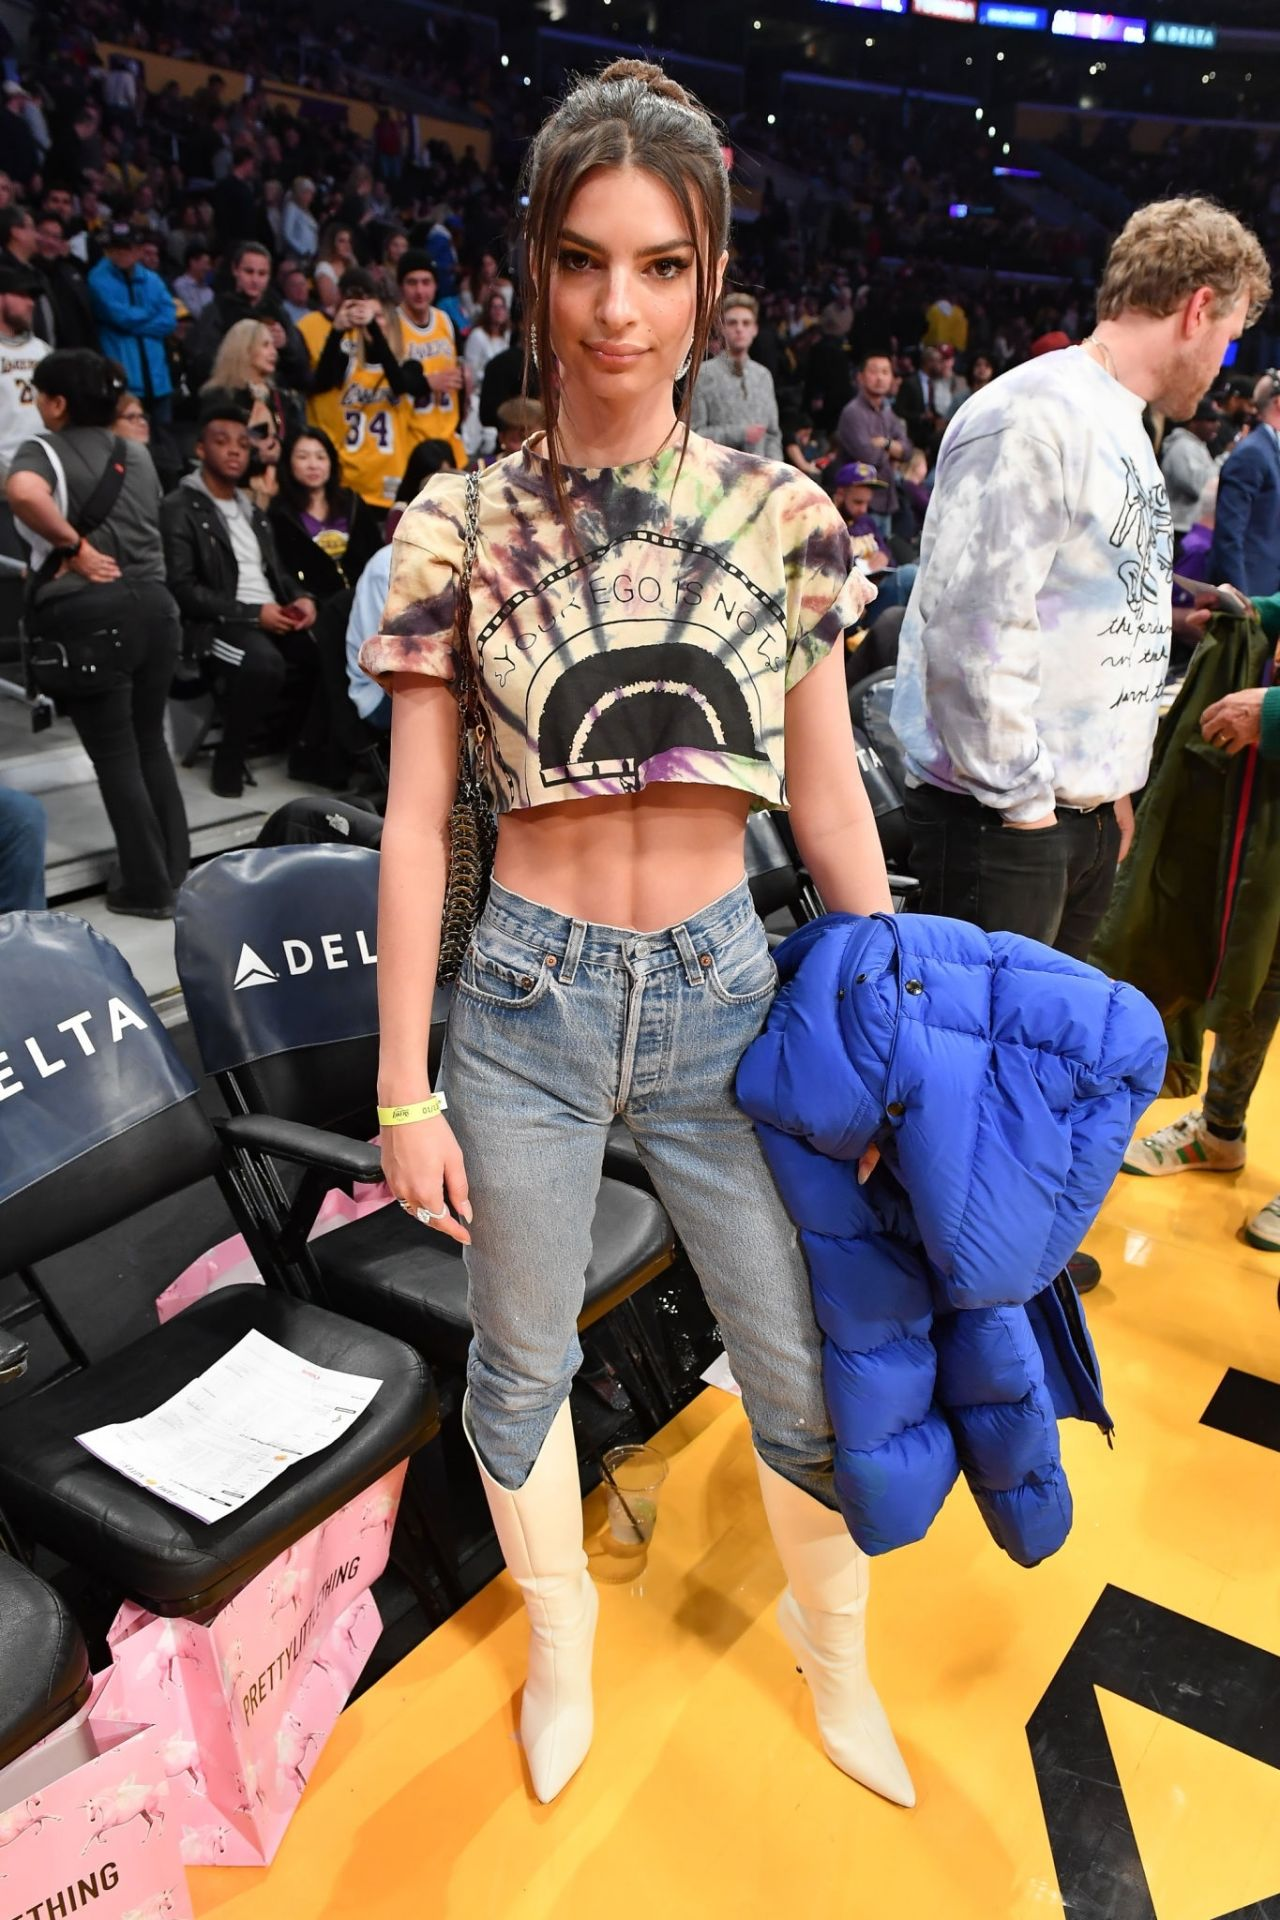 Victoria Justice – Photoshoot in New York March 2020 (3 Photos)